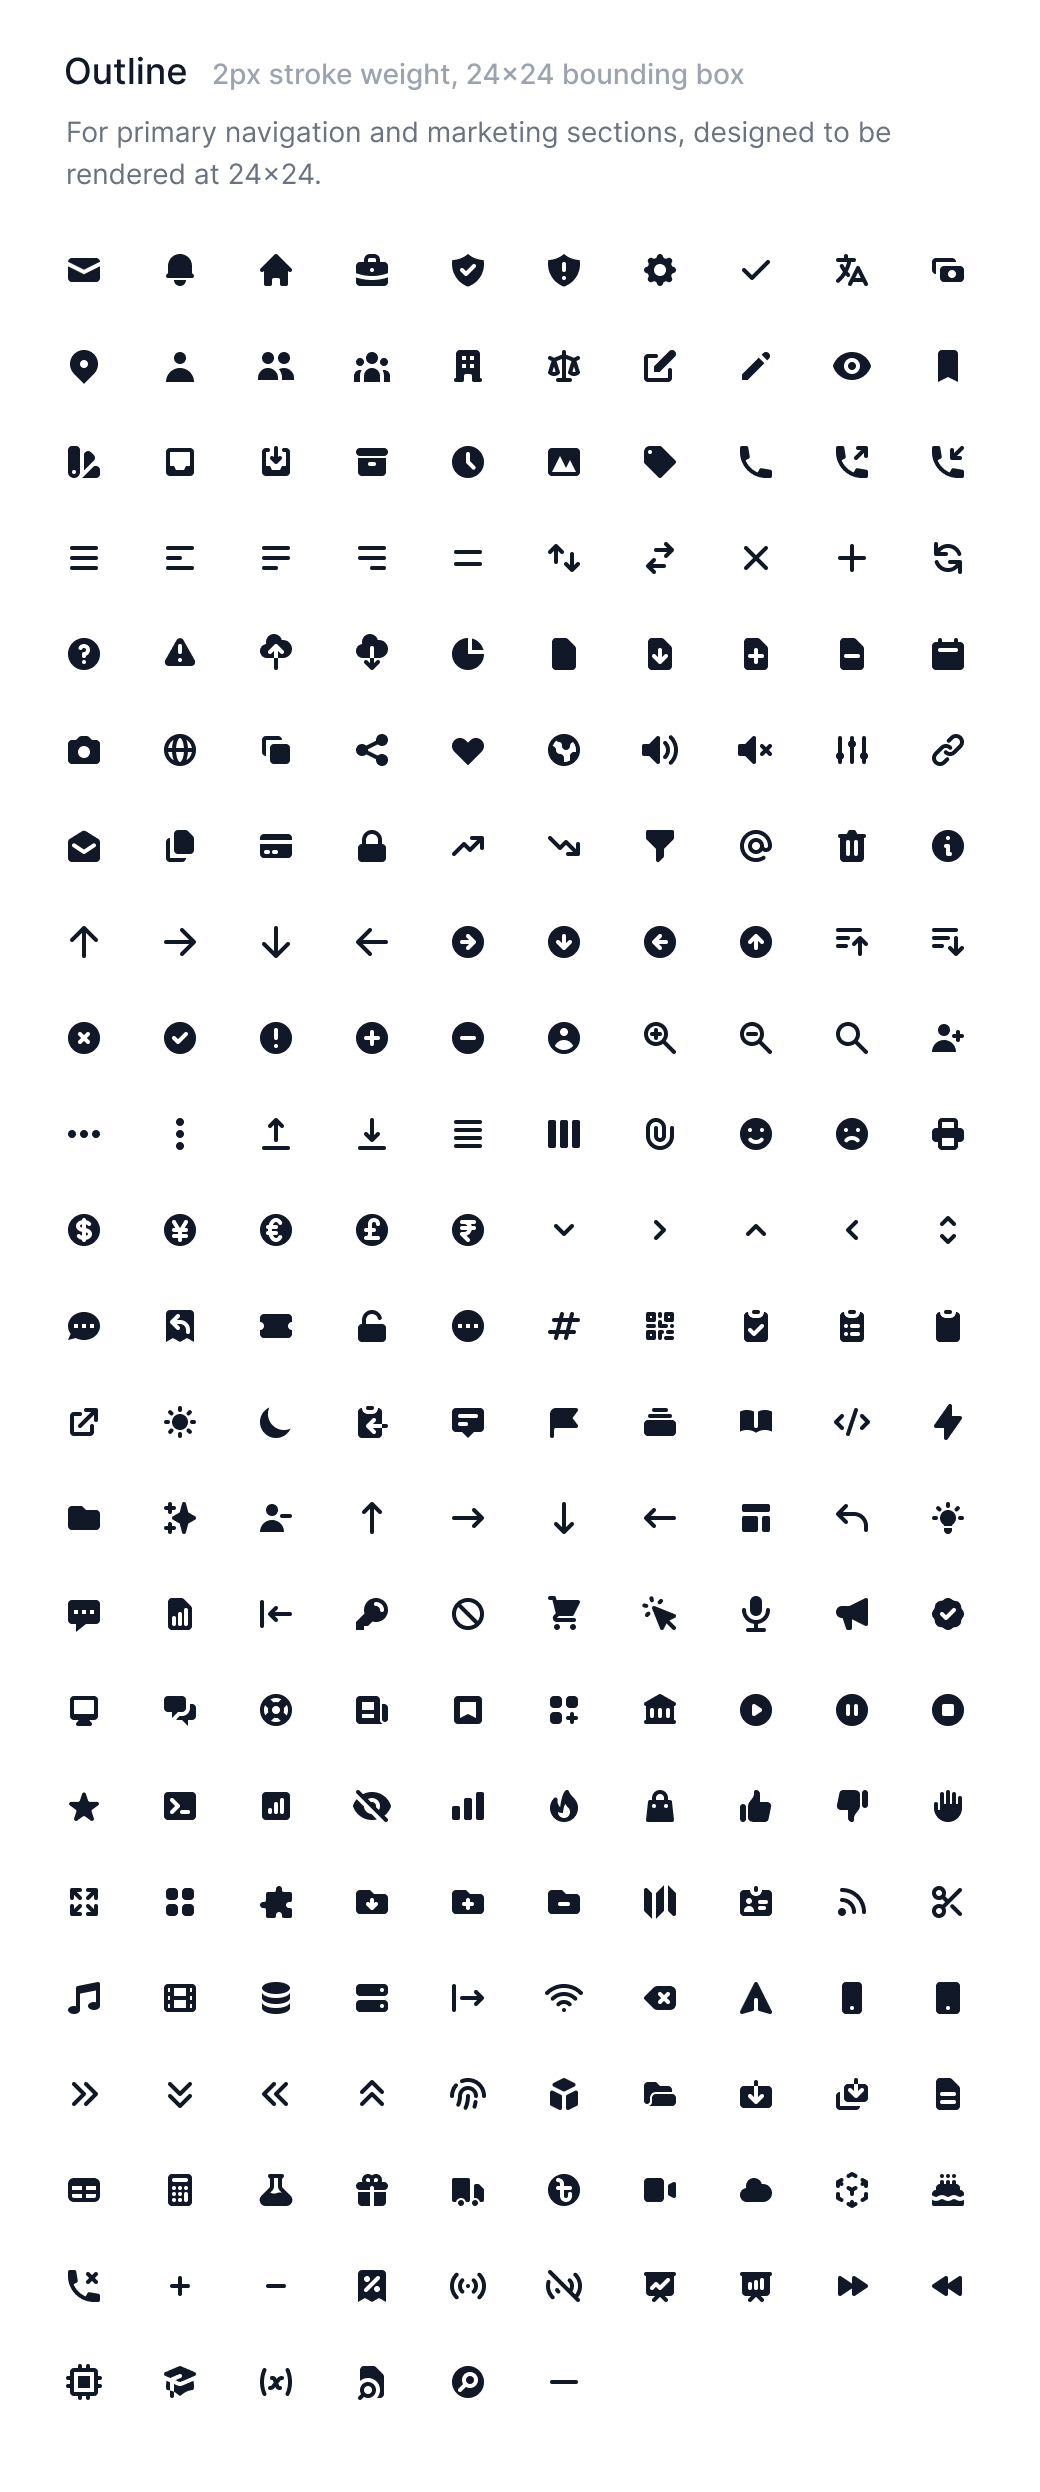 Heroicons - Beautiful hand-crafted SVG icons, by the makers of Tailwind CSS.